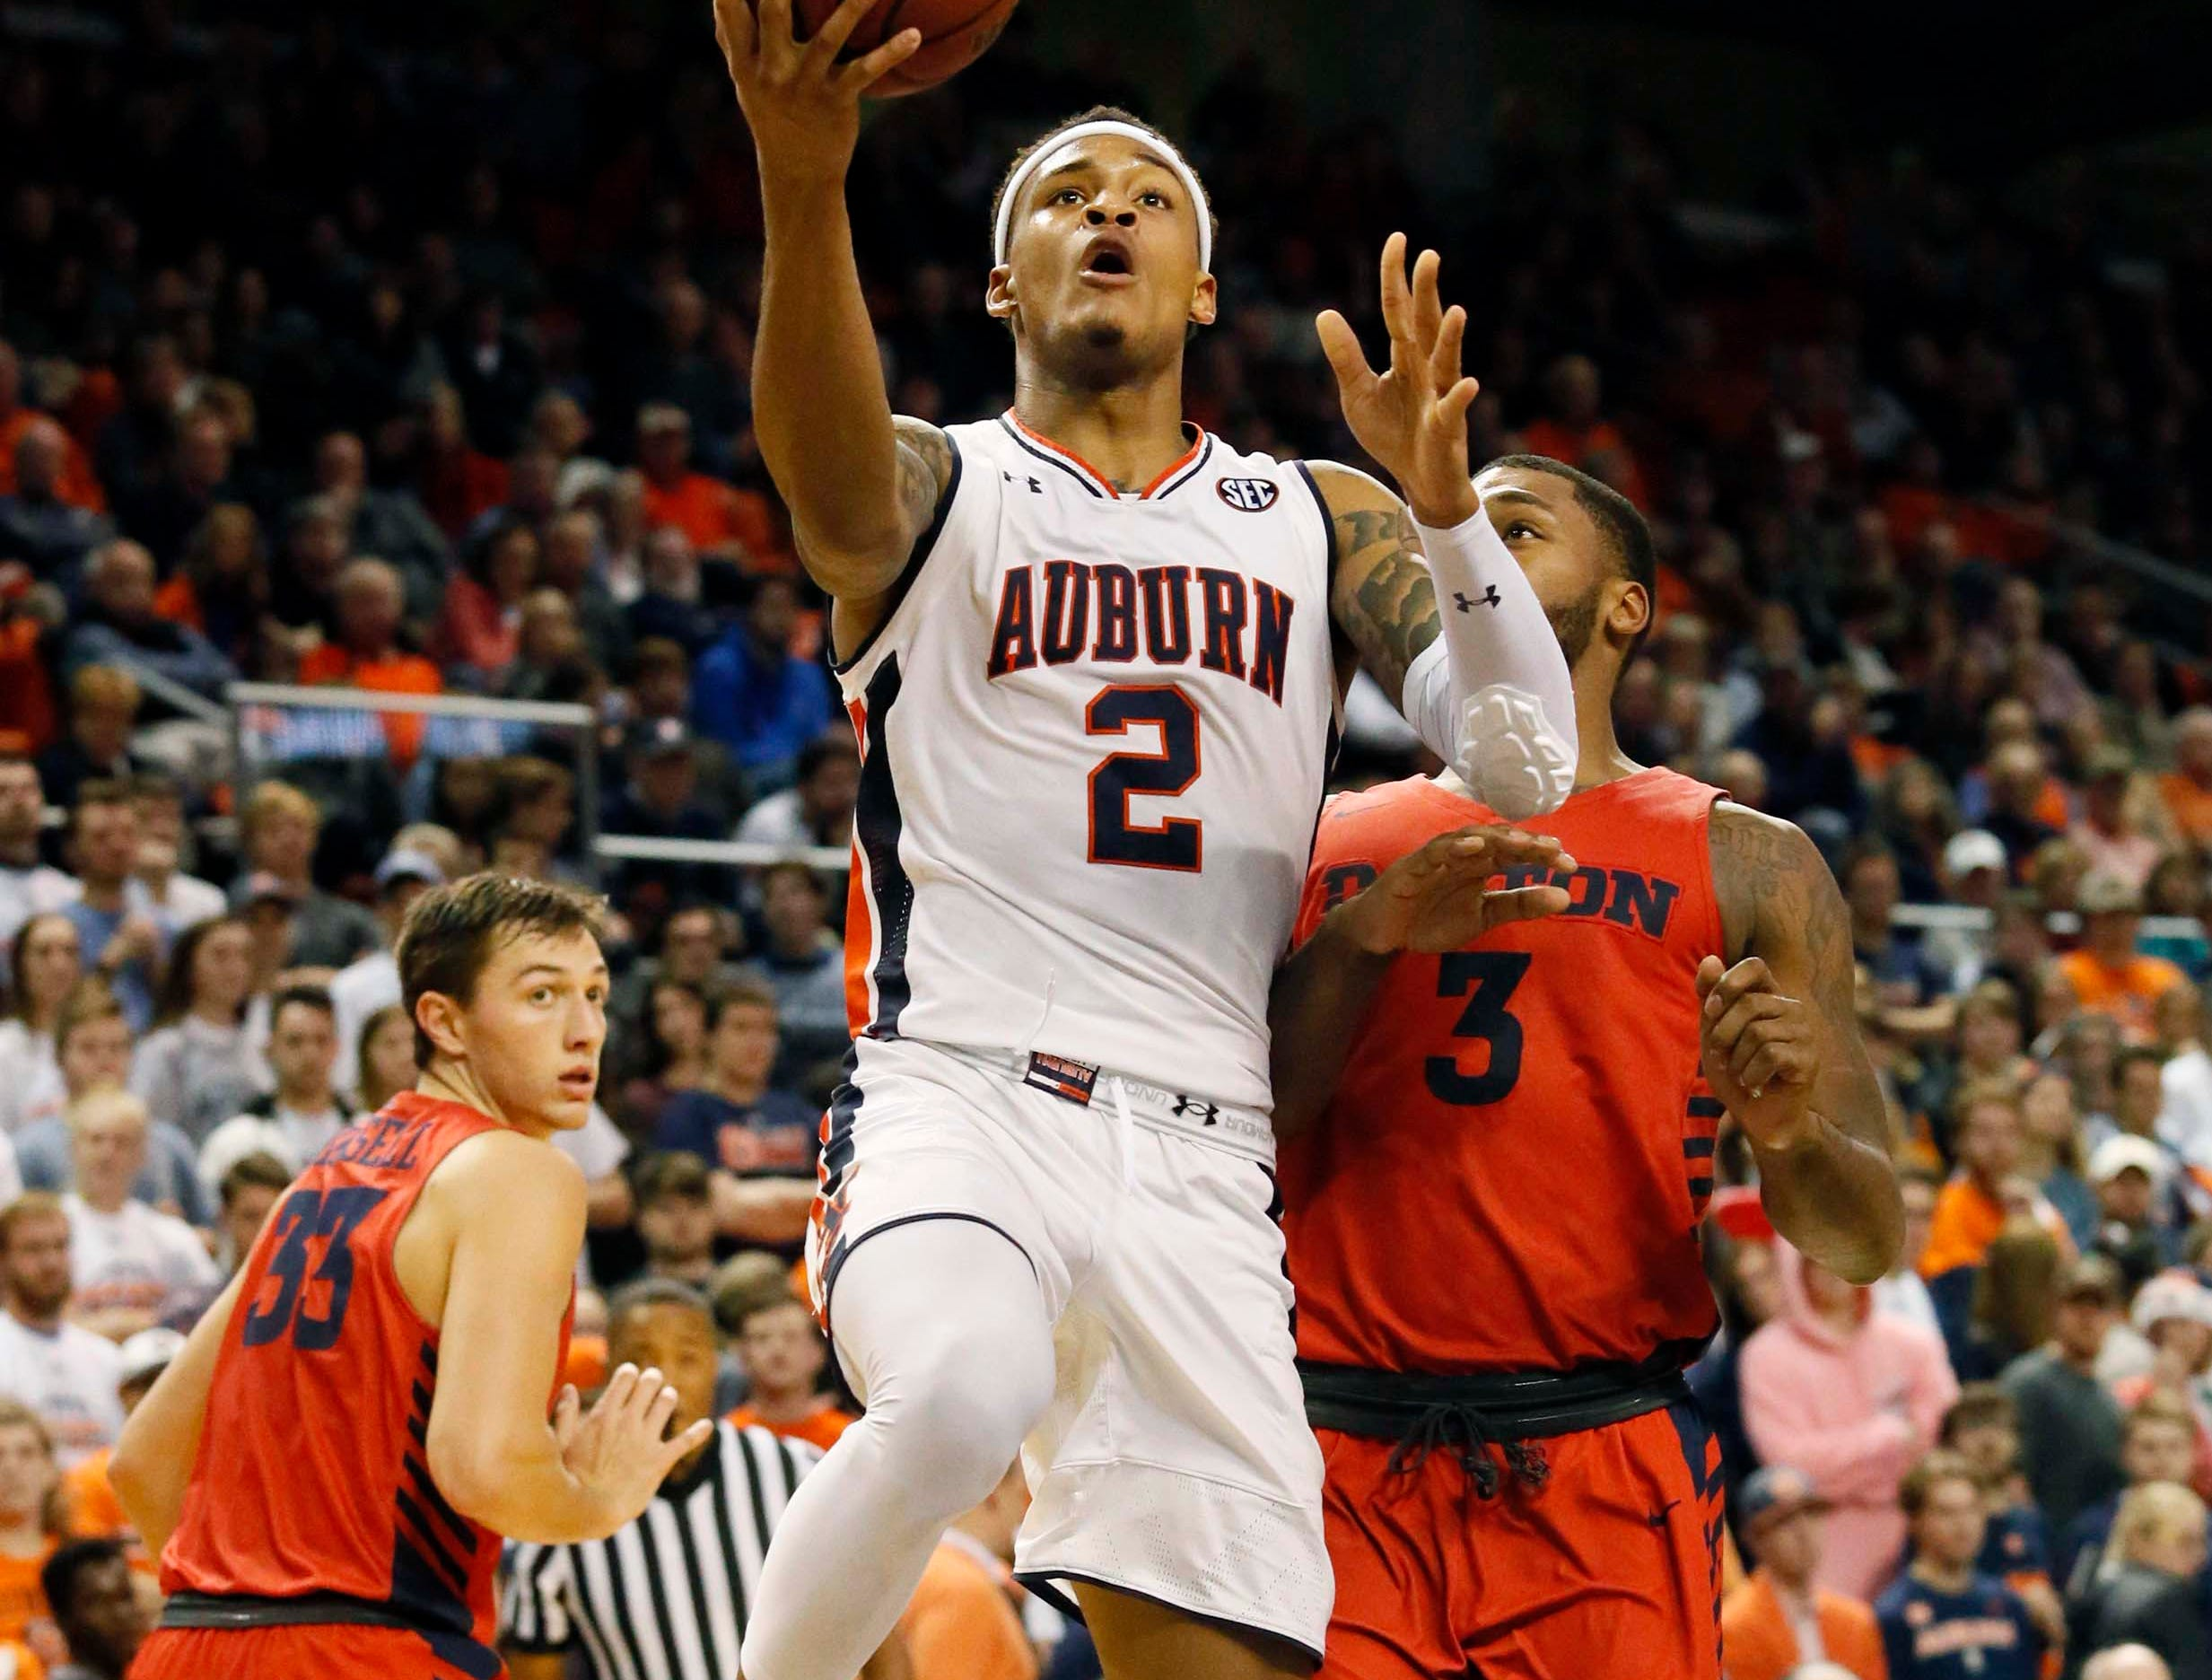 Dec 8, 2018; Auburn, AL, USA; Auburn Tigers guard Bryce Brown (2) takes a shot over Dayton Flyers Trey Landers (3) during the second half at Auburn Arena. Mandatory Credit: John Reed-USA TODAY Sports